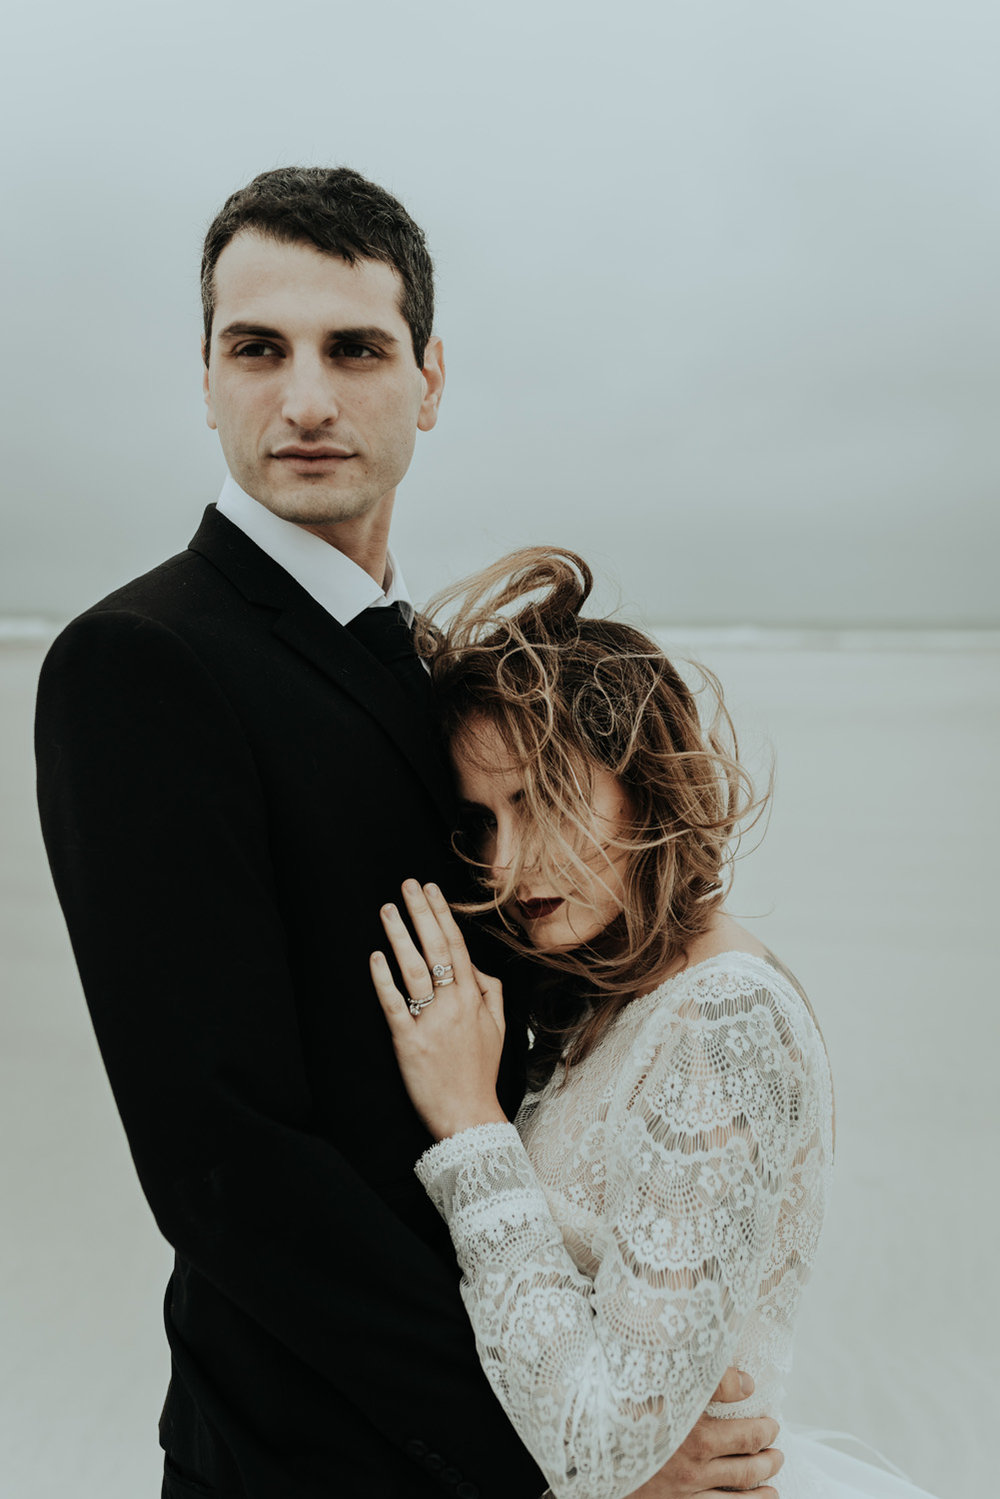 kylewillisphoto_kyle_Willis_Photography_liz_gibbs_brigantine_beach_atlantic_city_wedding_philadelphia_jersey_shore_new_nyc_engagement_delaware_engaged_married_rainy_photos_ac_boho9.jpg